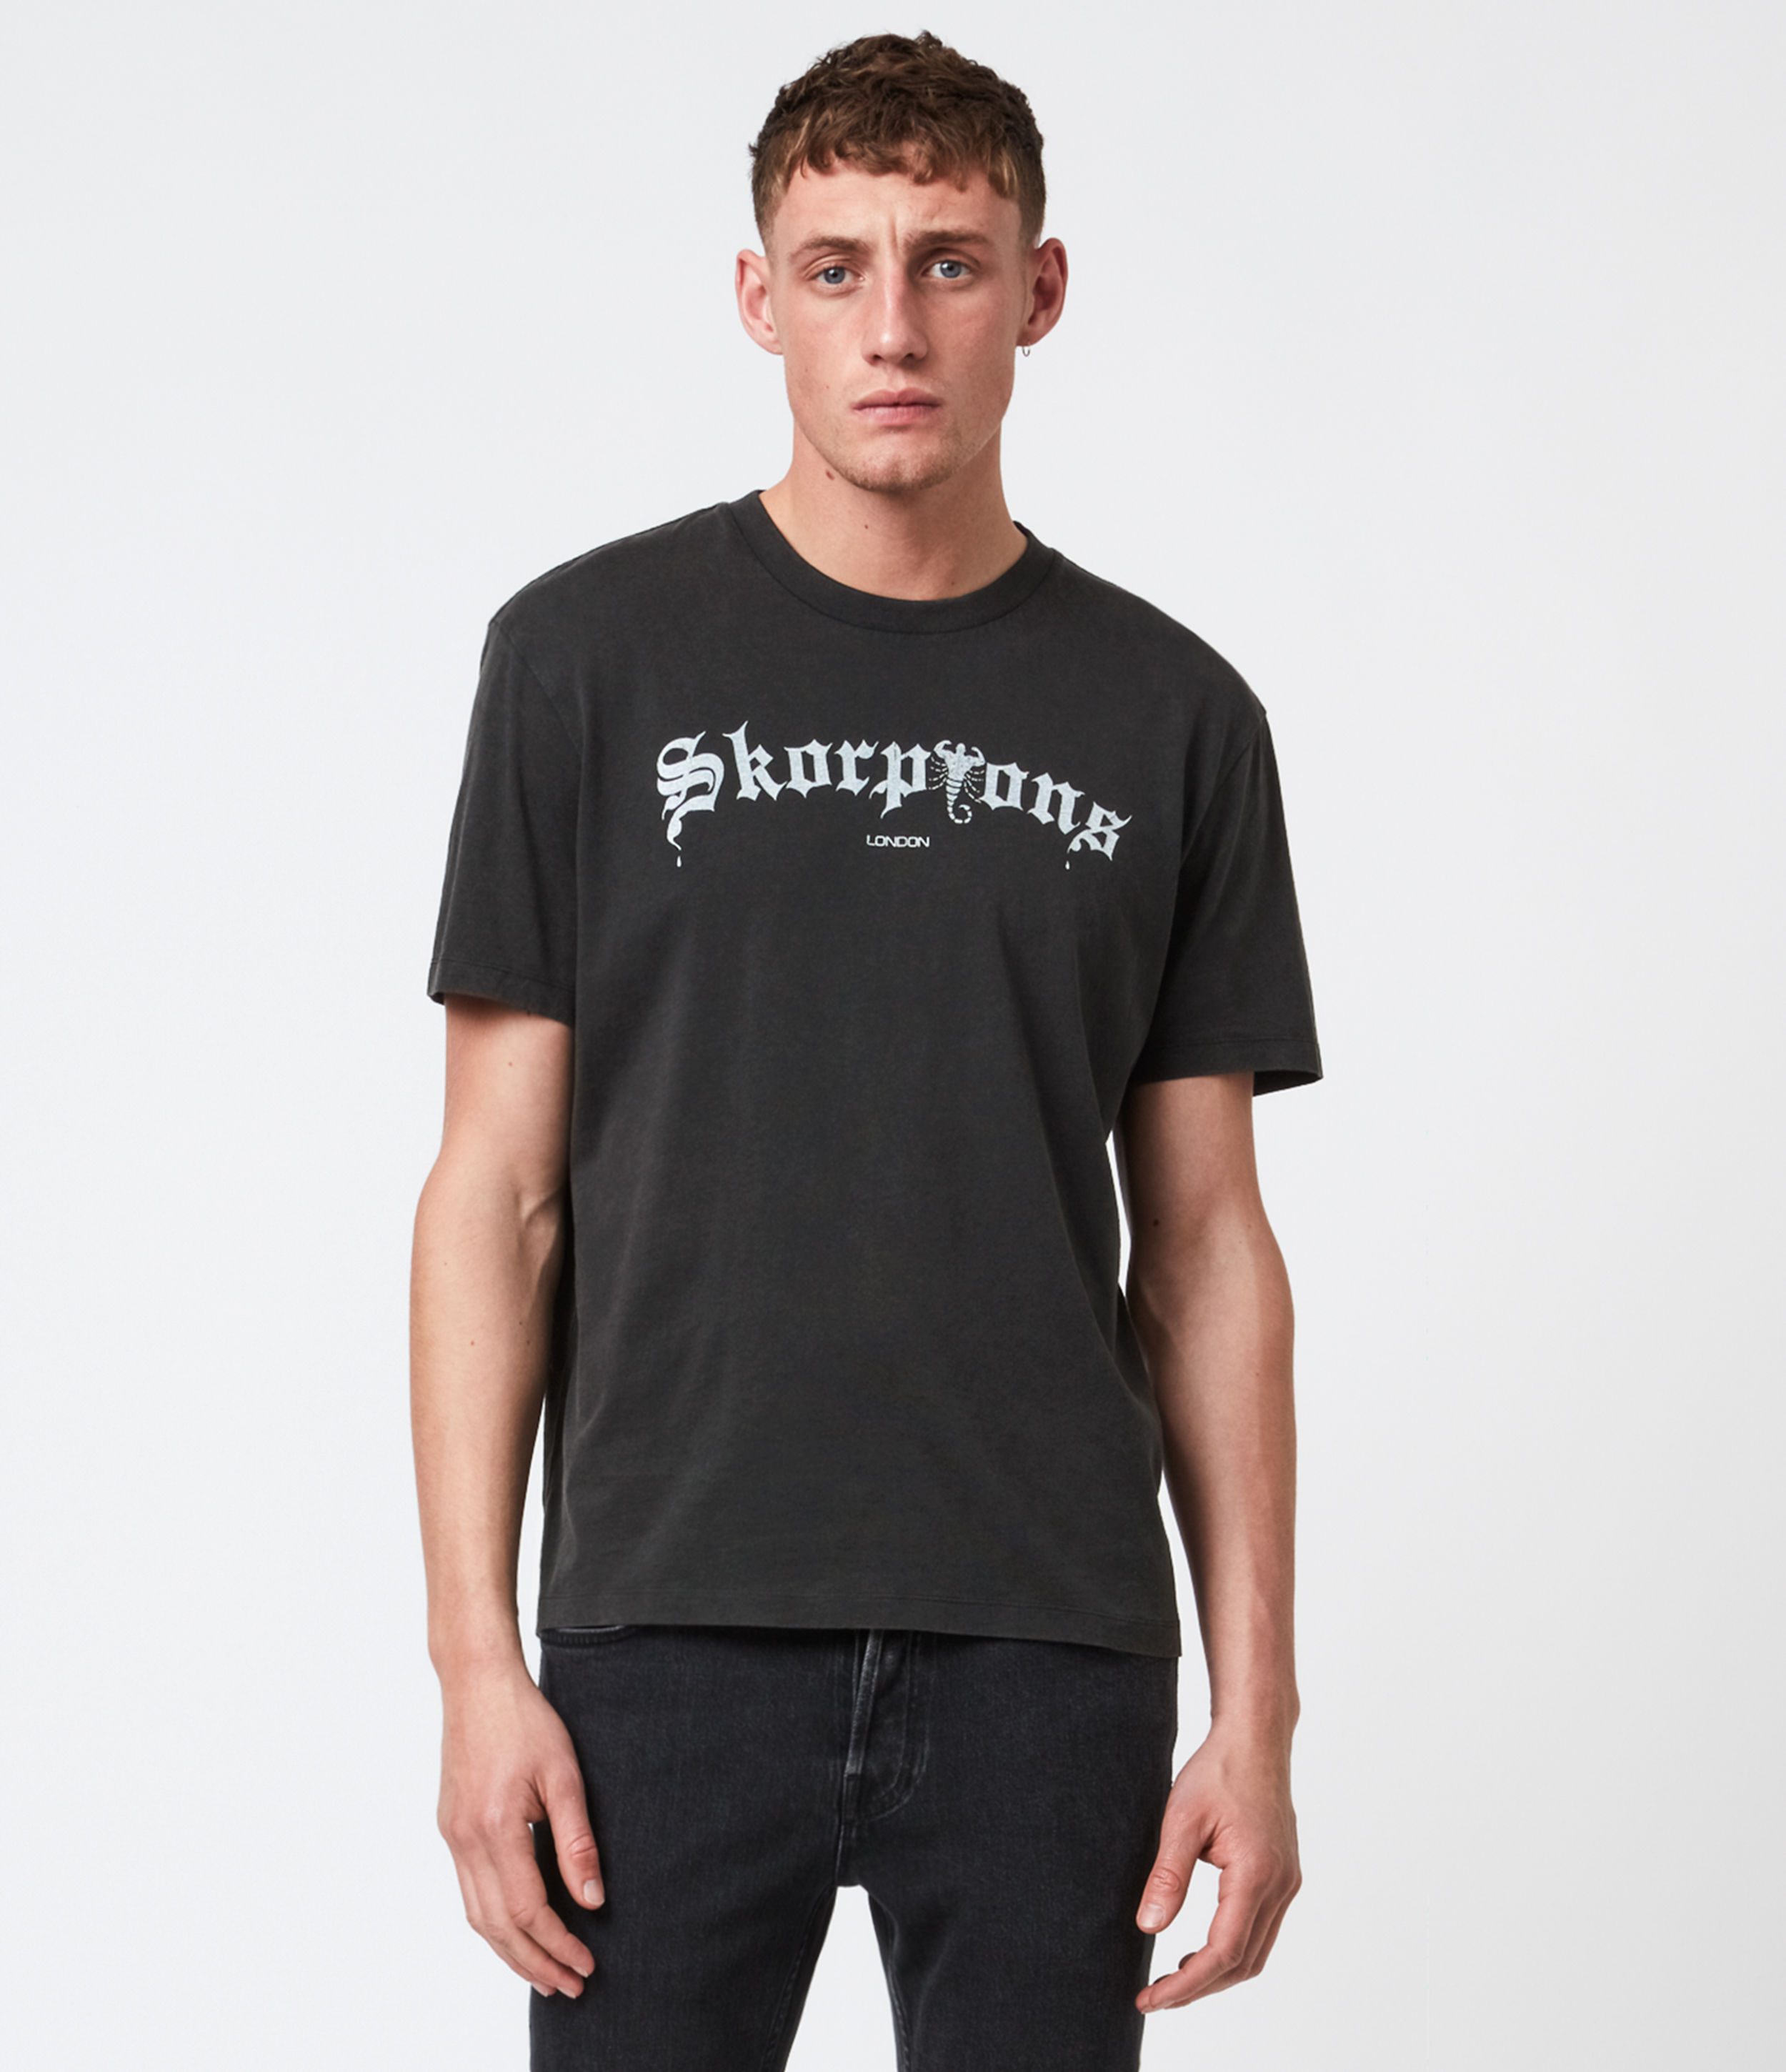 AllSaints Skorpions London T-Shirt